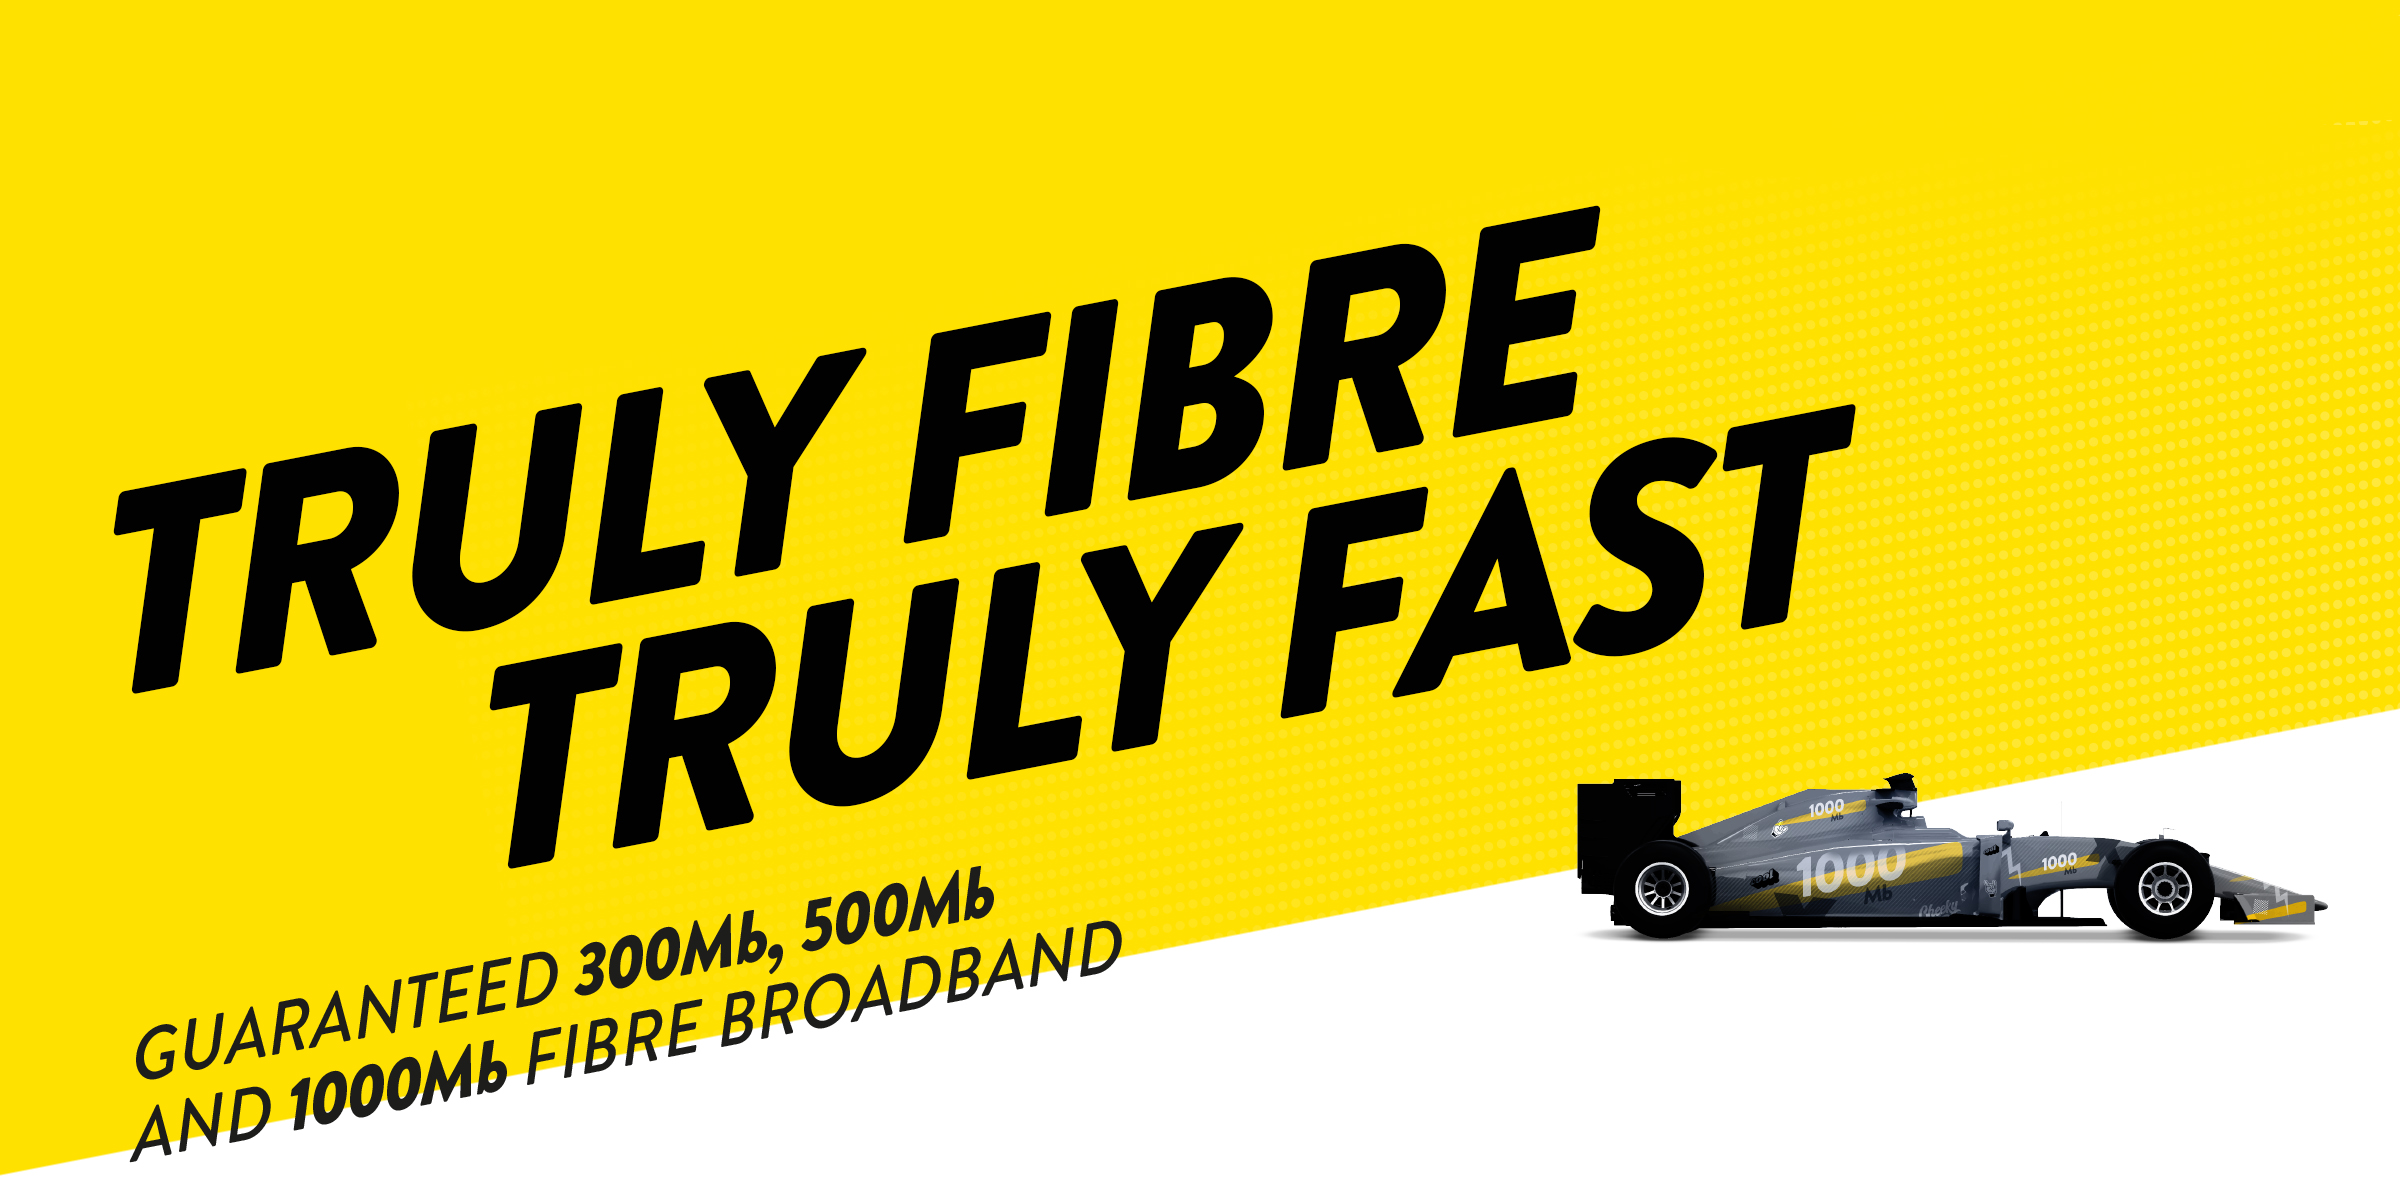 TRULY FIBRE, TRULY FAST. Guaranteed 300mb, 500mb and 1000mb Fibre Broadband.